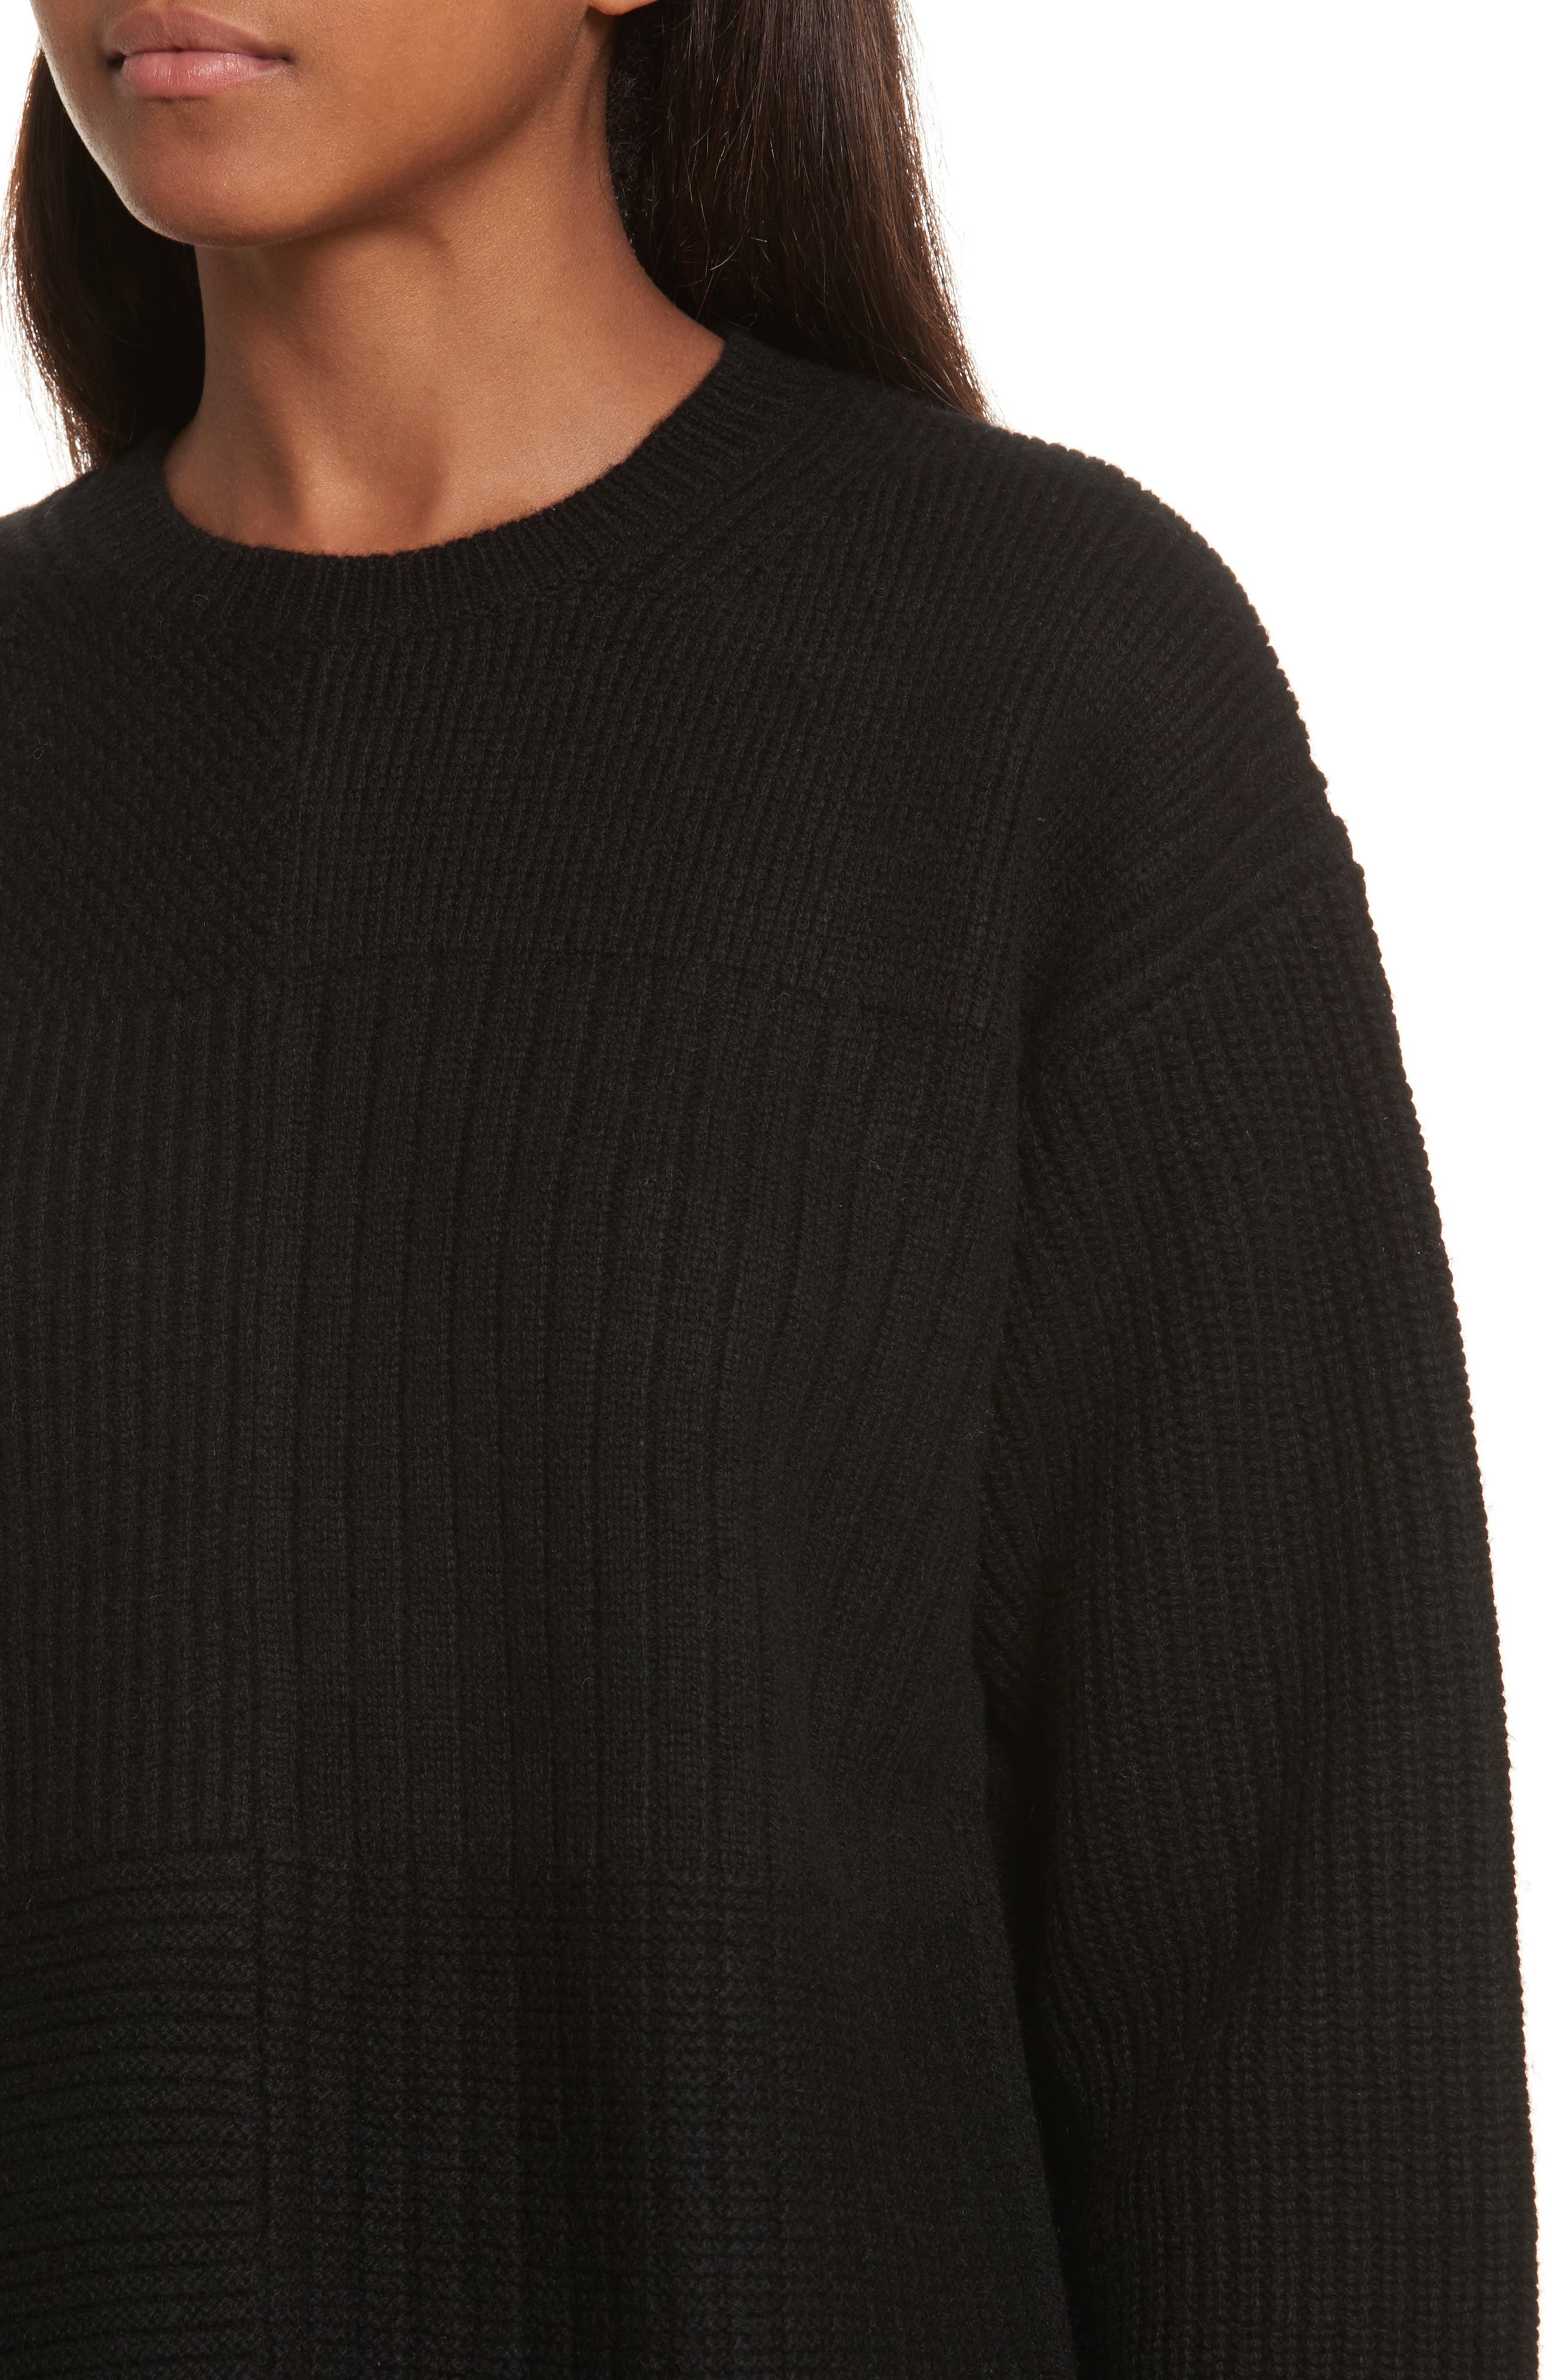 Wool Blend Textured Pullover,                             Alternate thumbnail 4, color,                             Black